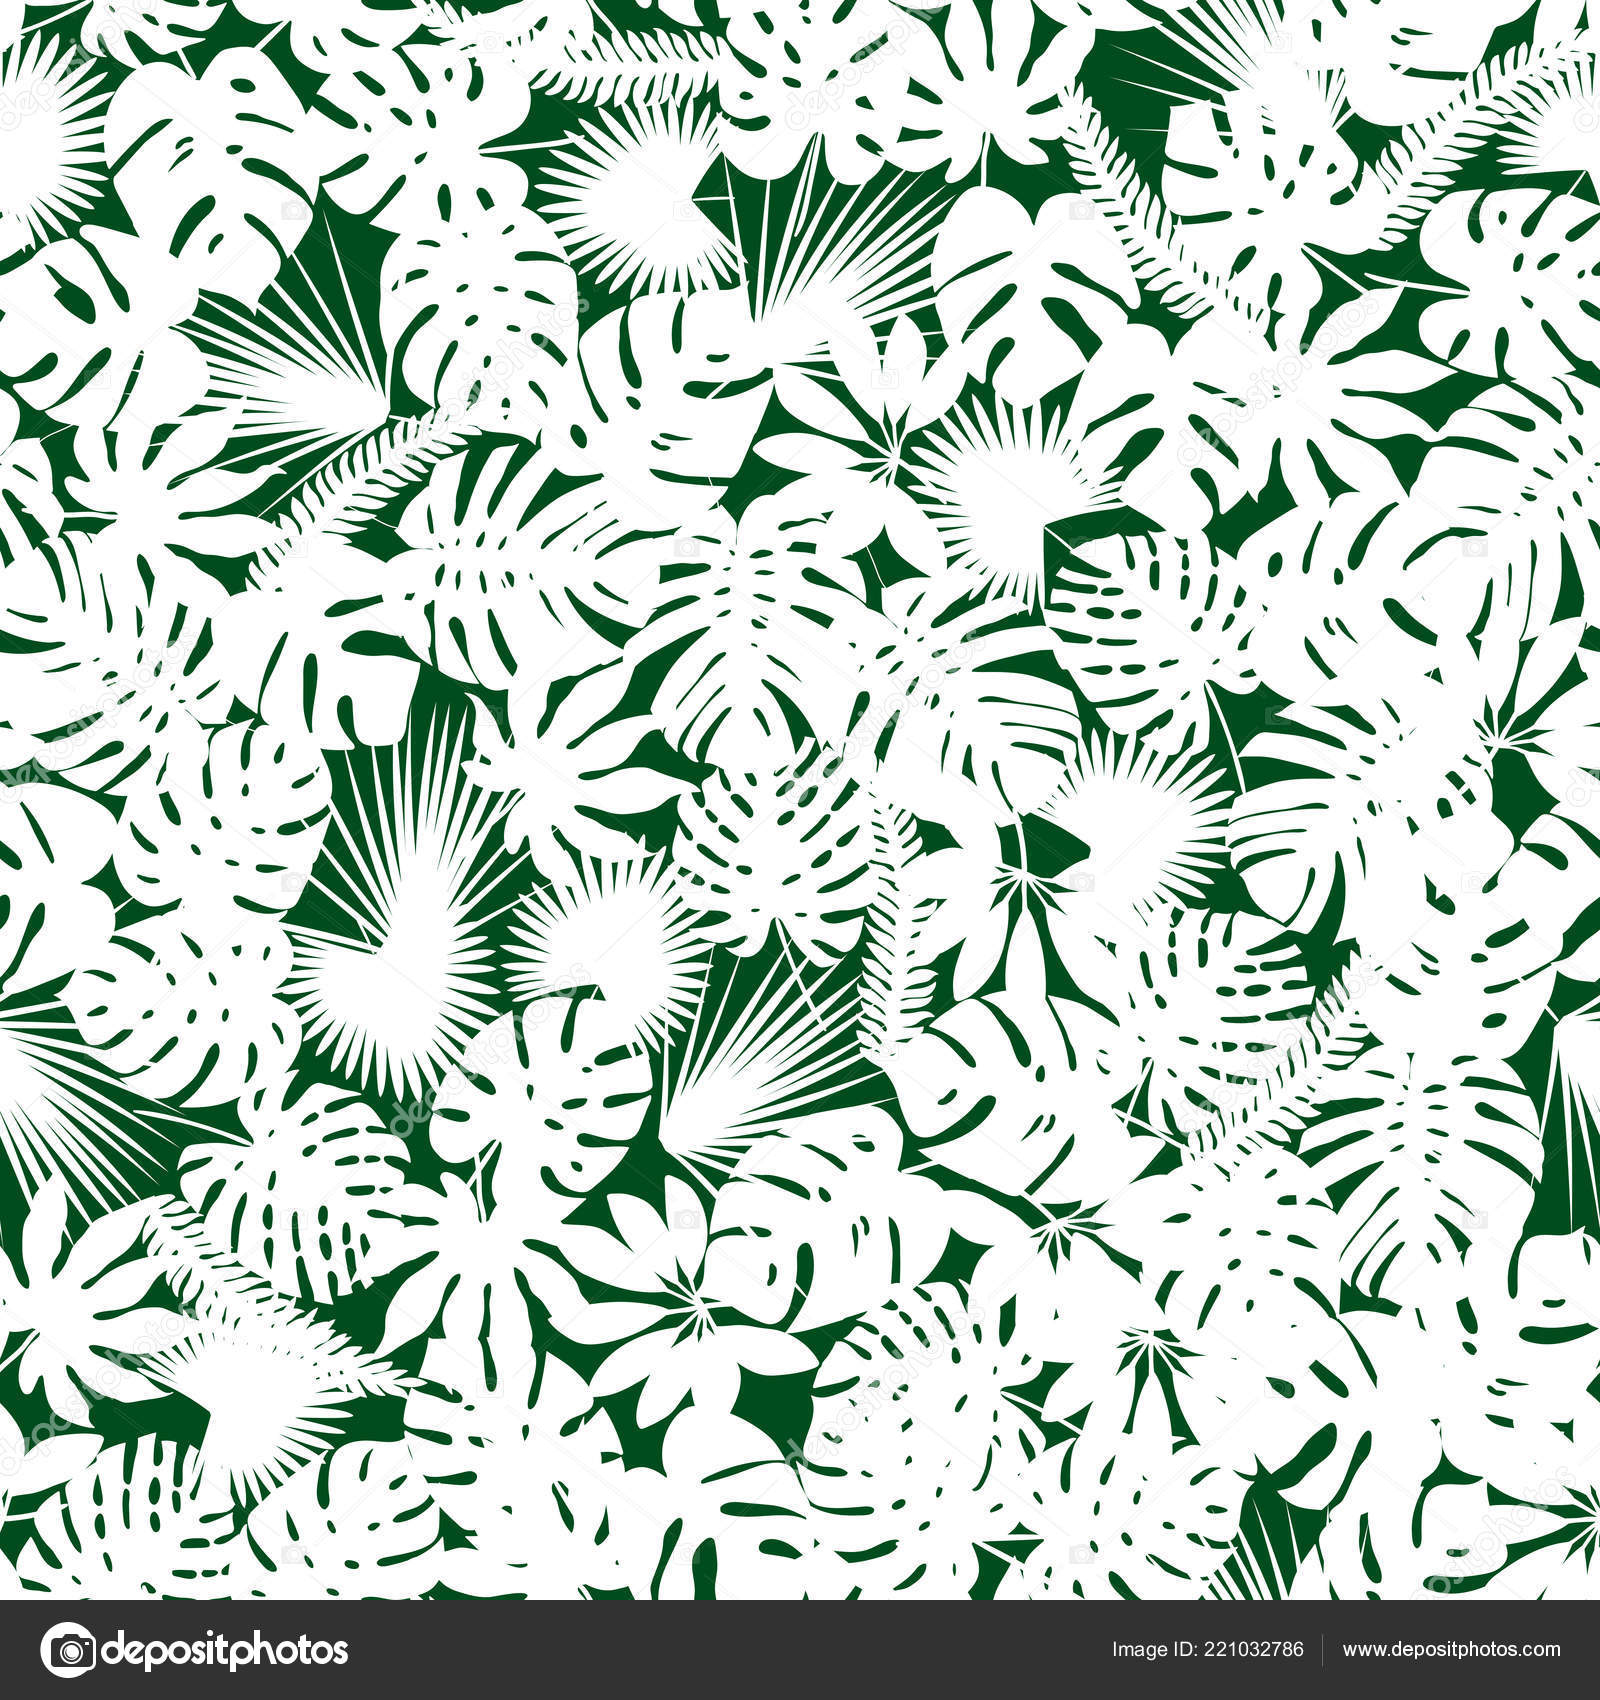 Palm And Monstera Leaves Silhouettes Background Vector Seamless Pattern With Tropical Plants Jungle Foliage Illustration Green White By